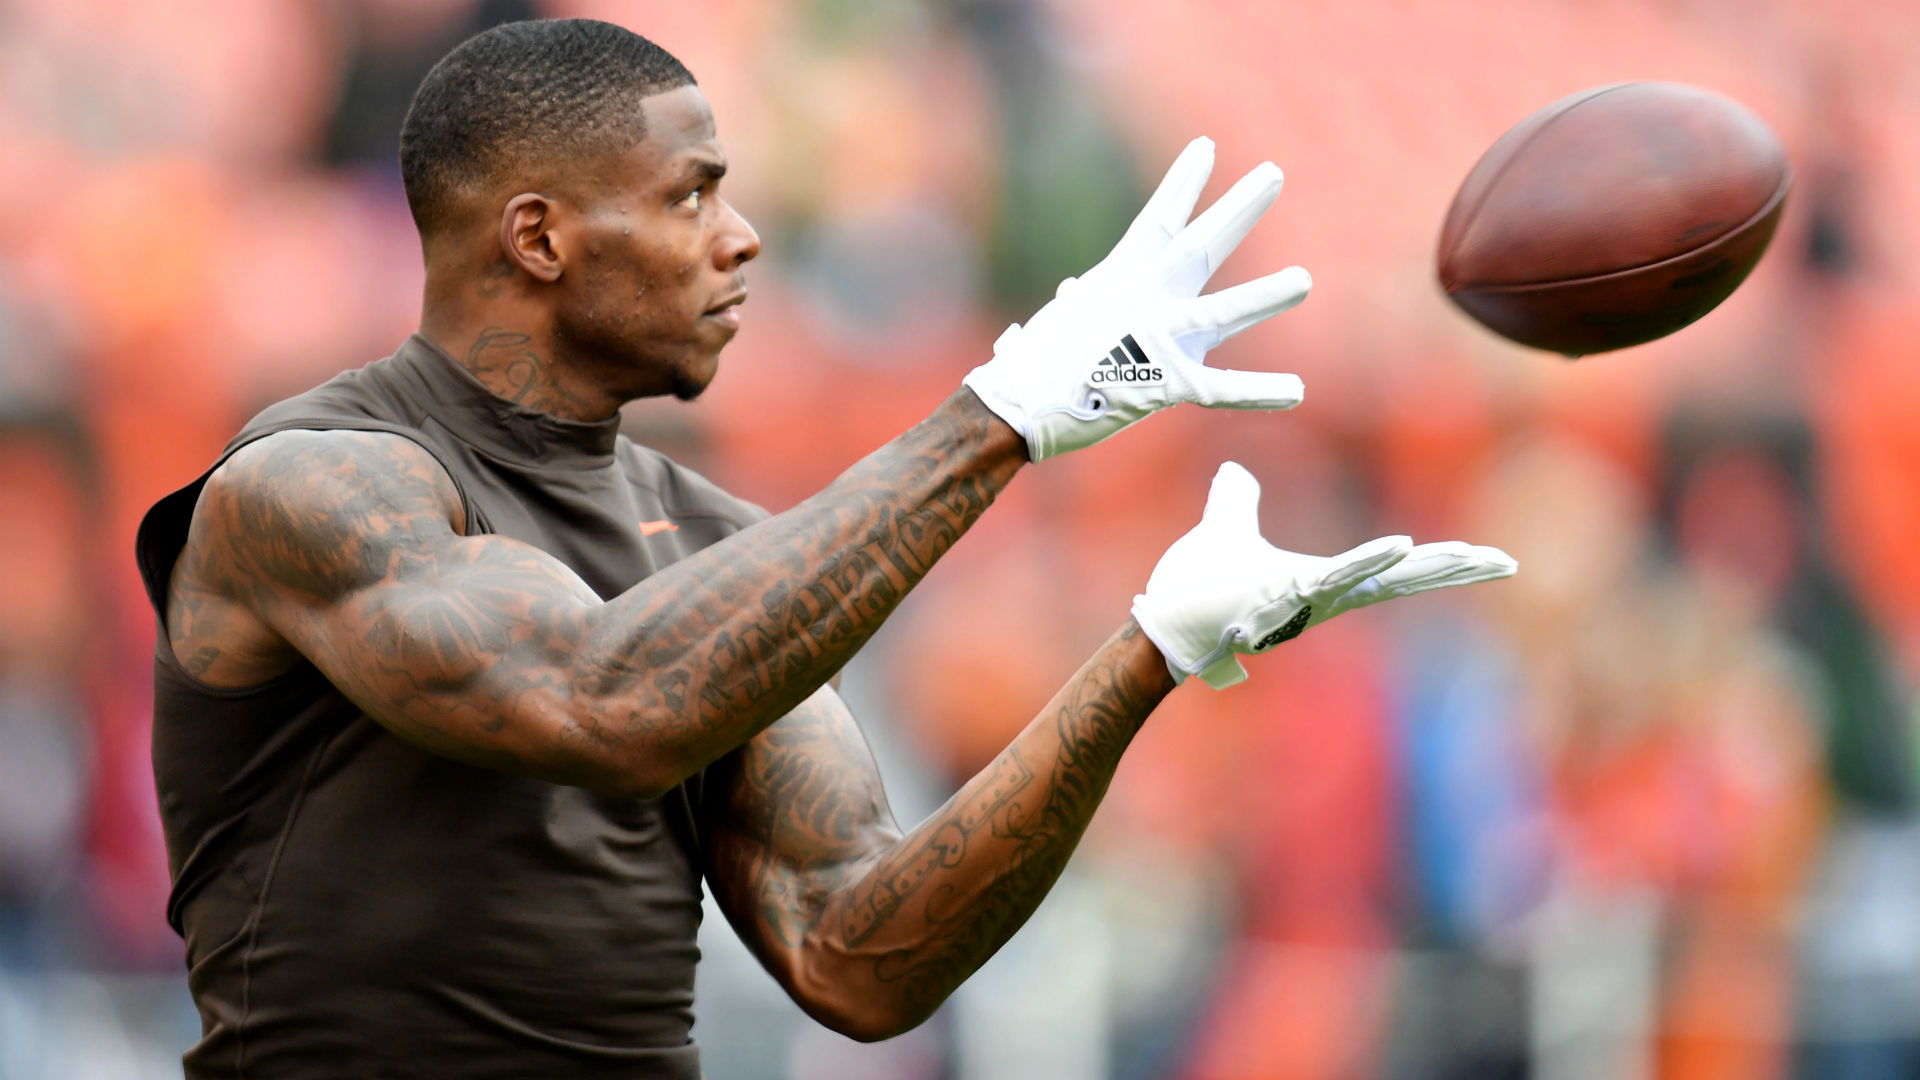 541adad5e Why Josh Gordon trade will work: WR needs Patriots more than they need him  | Sporting News